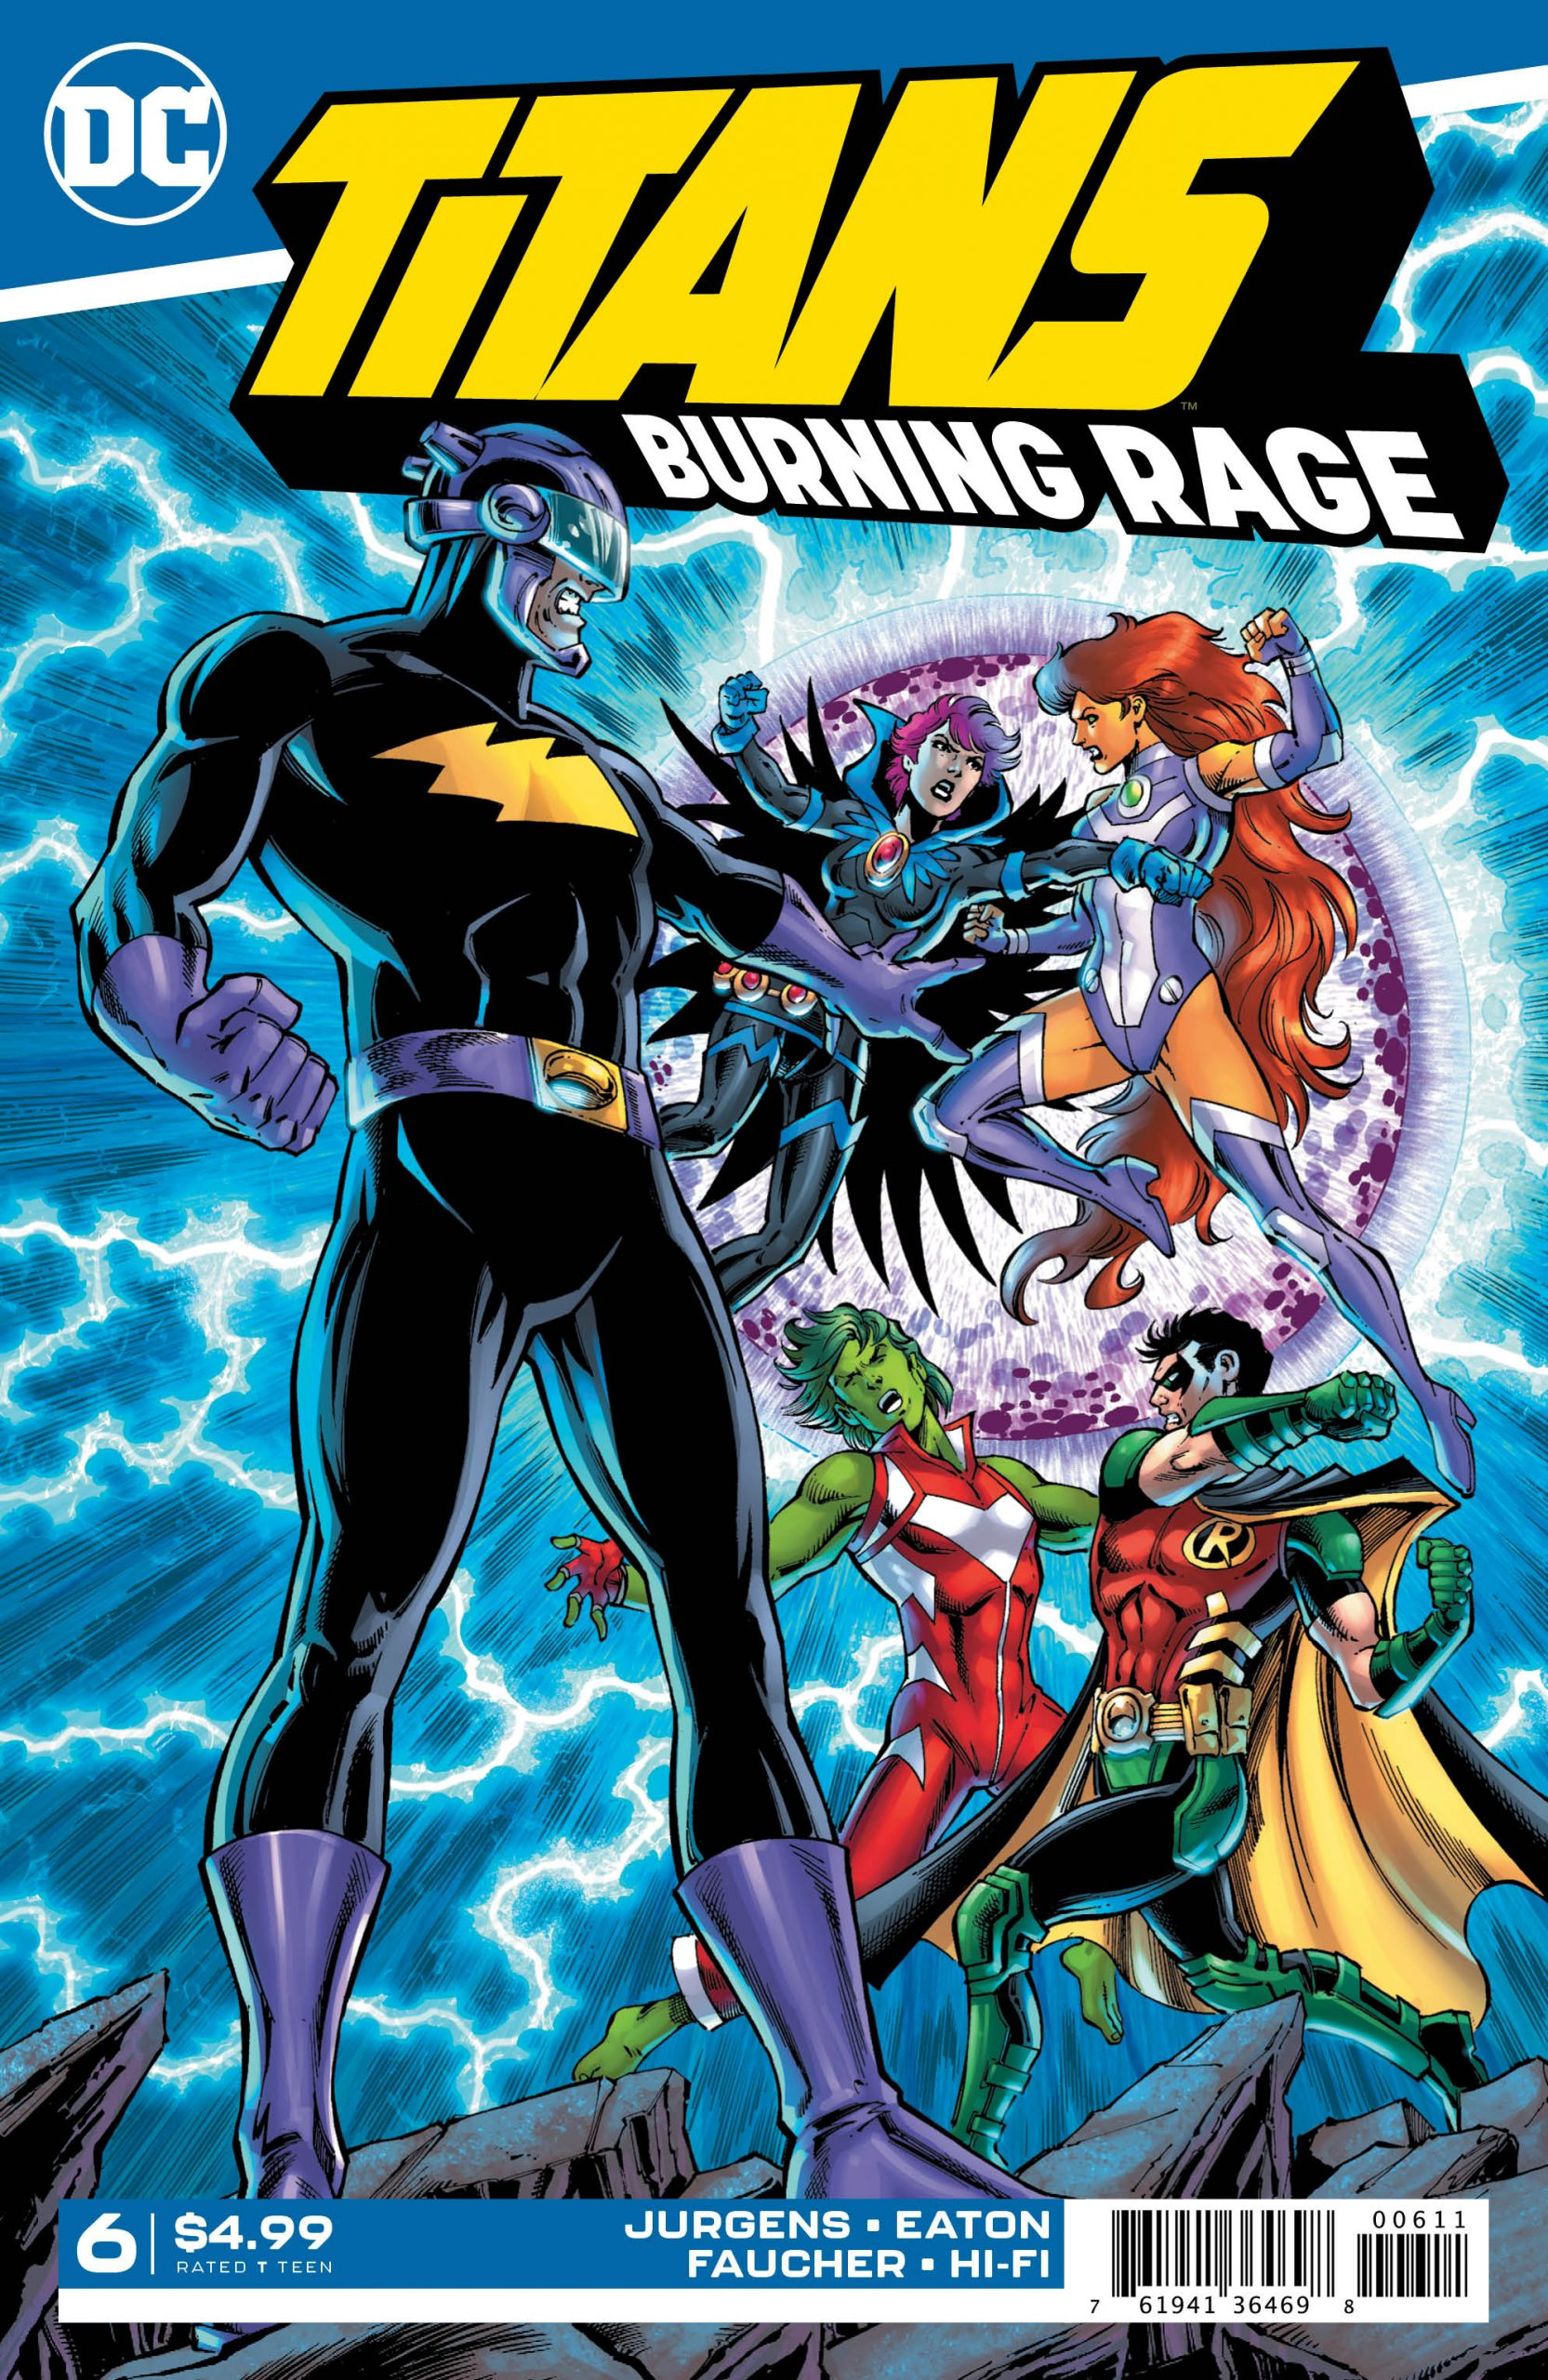 DC Preview: Titans Burning Rage #6